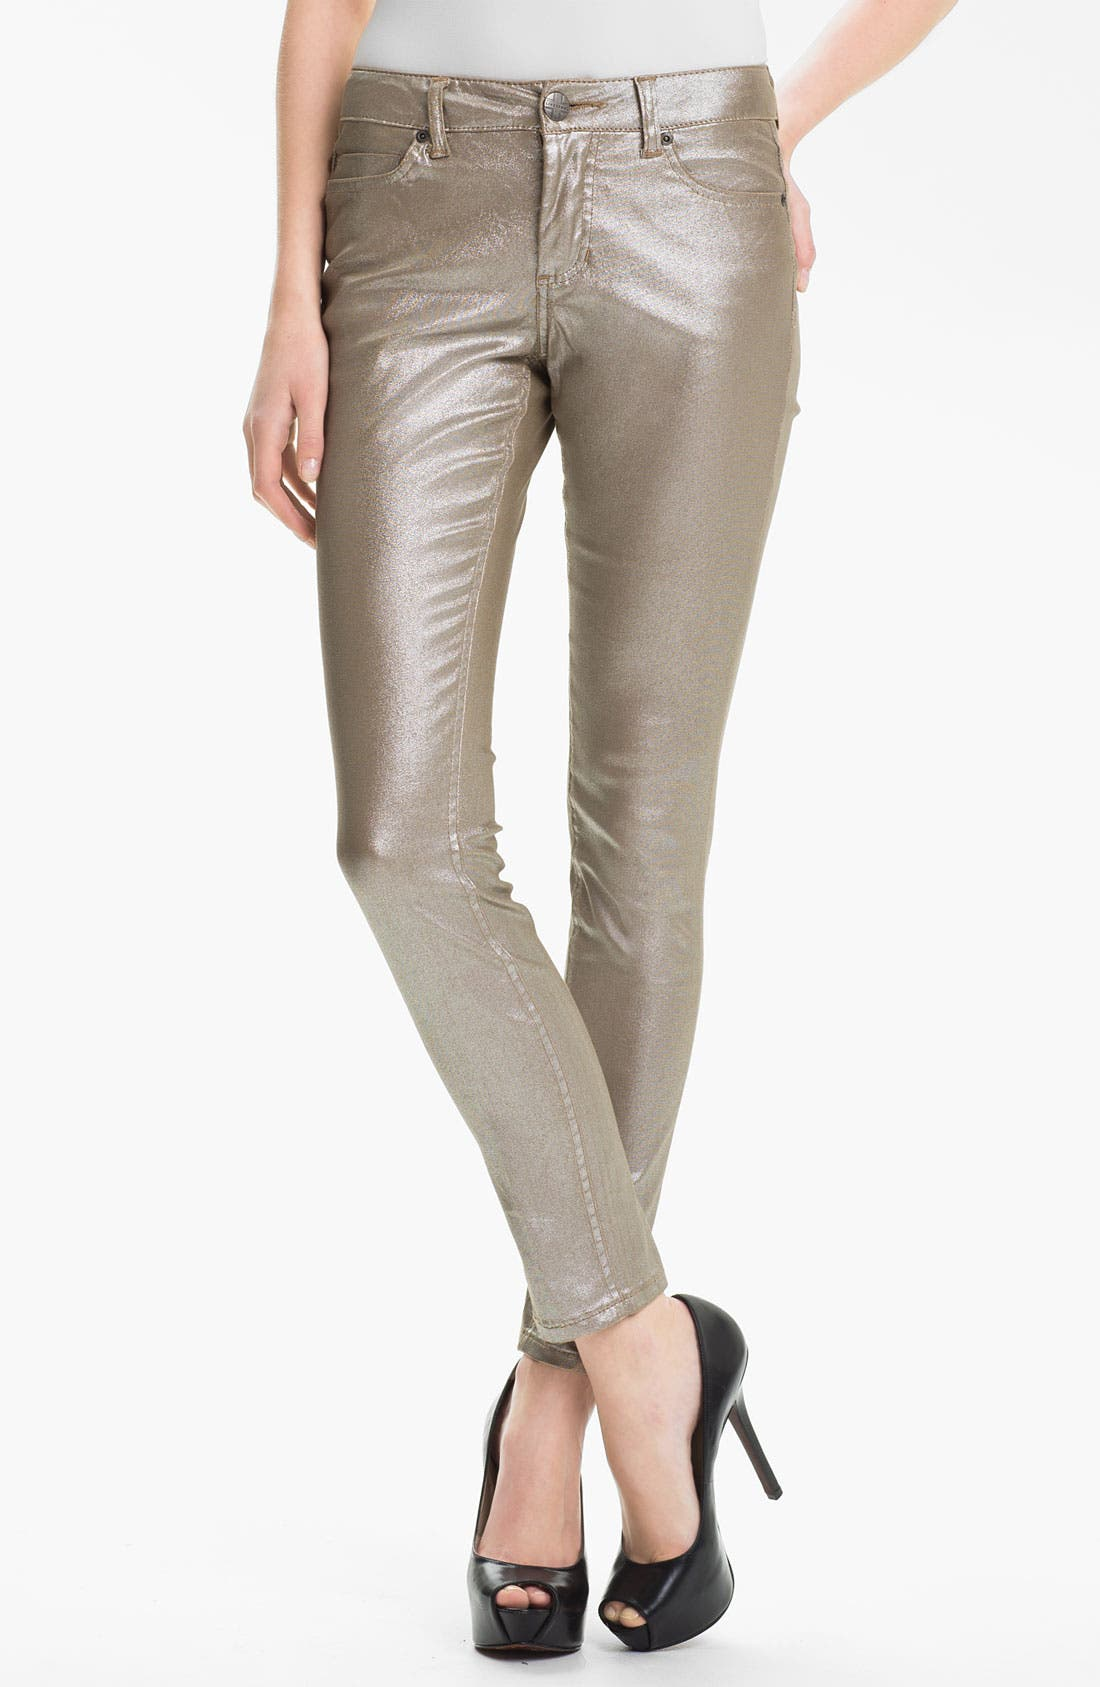 Main Image - Liverpool Jeans Company 'Abby' Metallic Coated Skinny Jeans (Petite) (Online Exclusive)